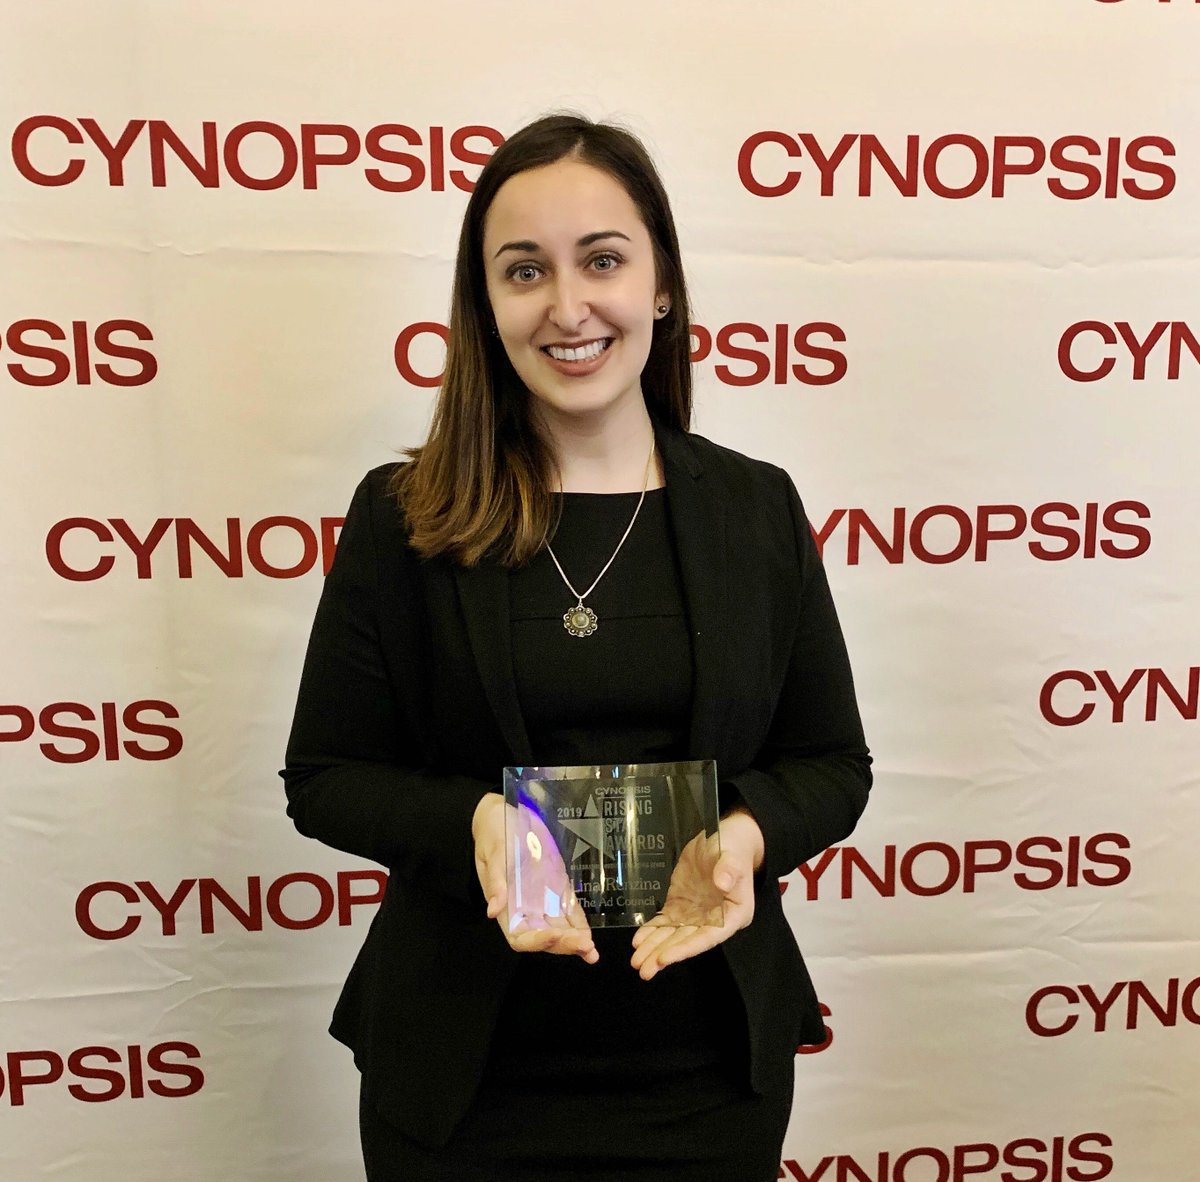 A big congrats to our very own Lina Renzina (@lina_xena ), Talent Relations and Partnerships Manager, for being a 2019 @CynopsisMedia Rising Star!! 🌟🎉